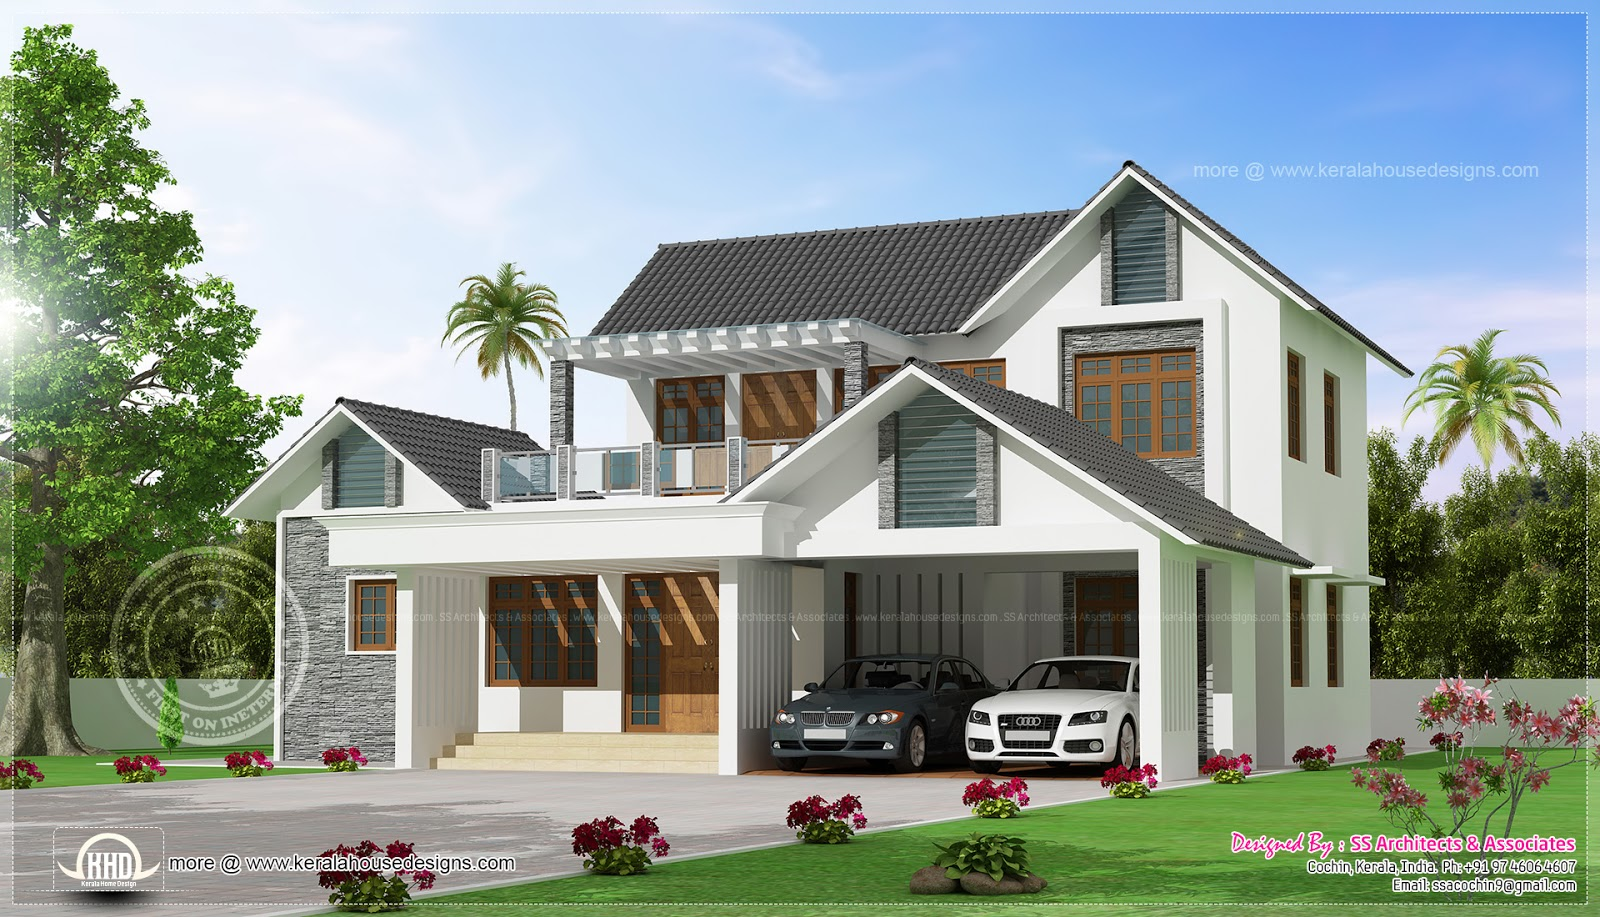 Awesome modern villa exterior elevation kerala home for Awesome home plans